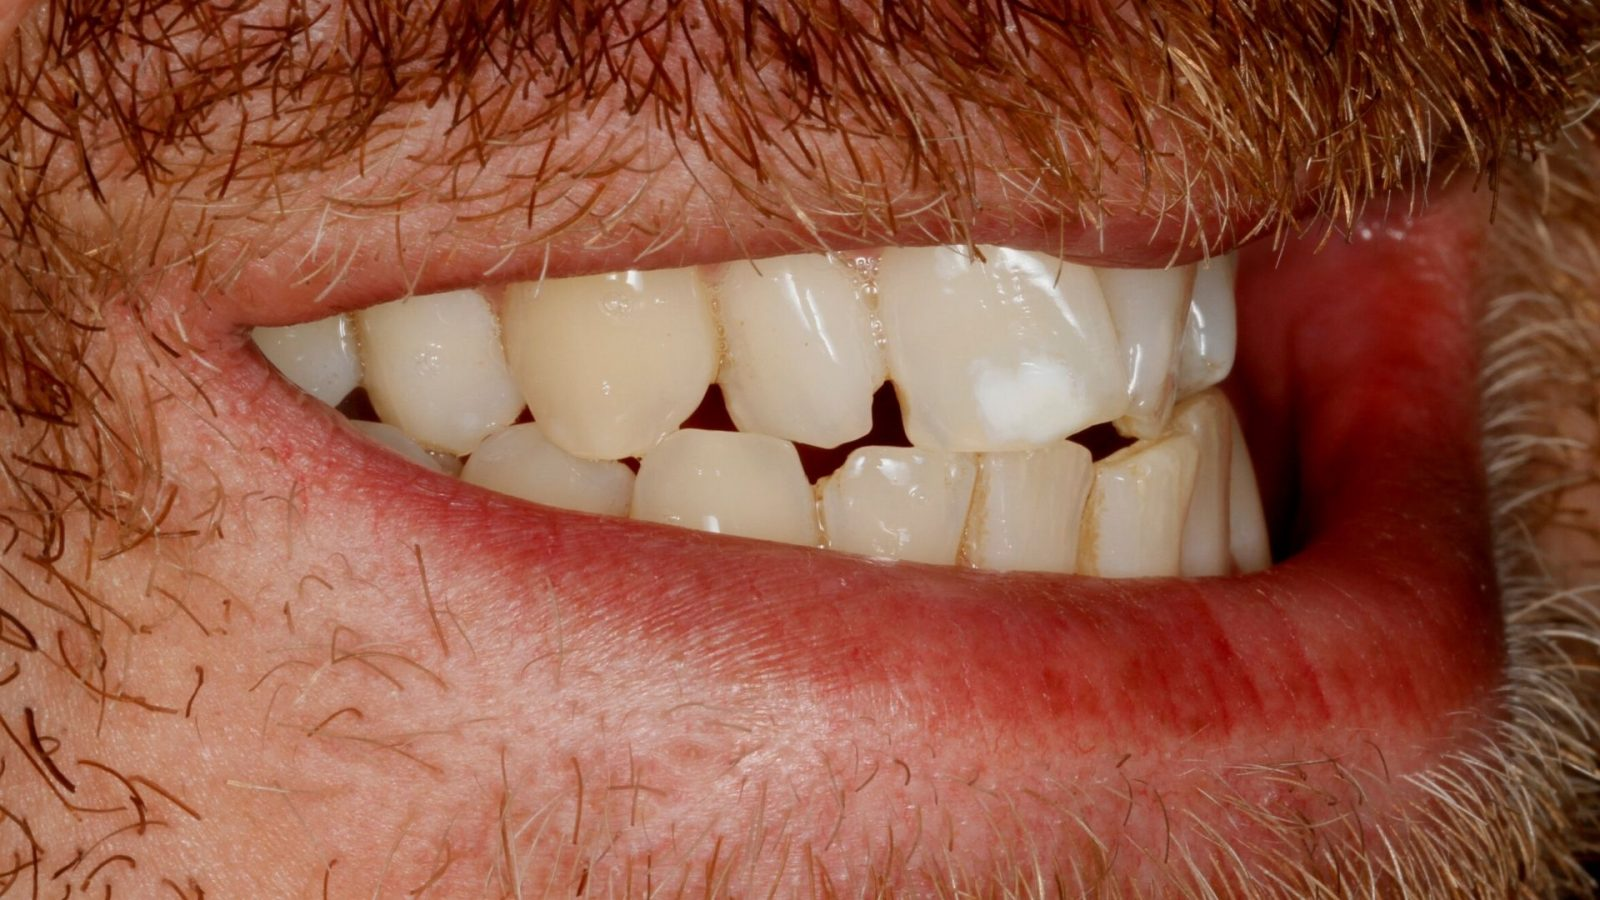 Photo of Craig's teeth before from the side